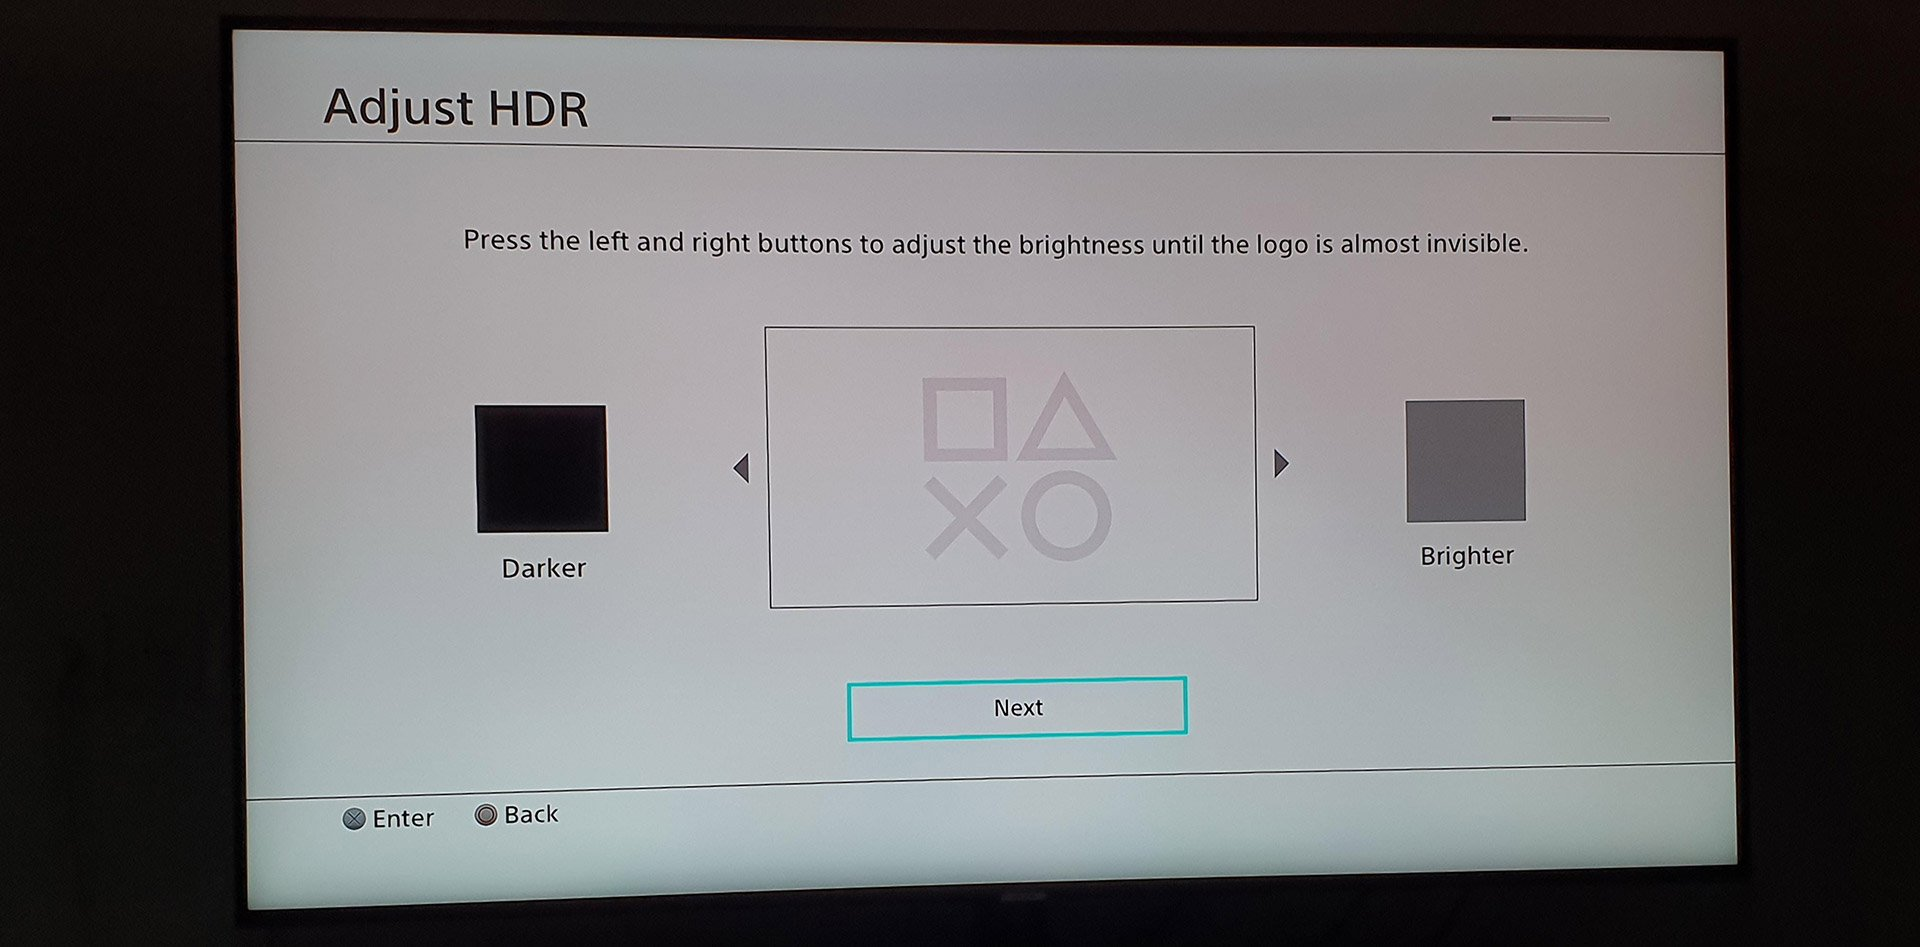 PS4 7.00 beta HDR tuner